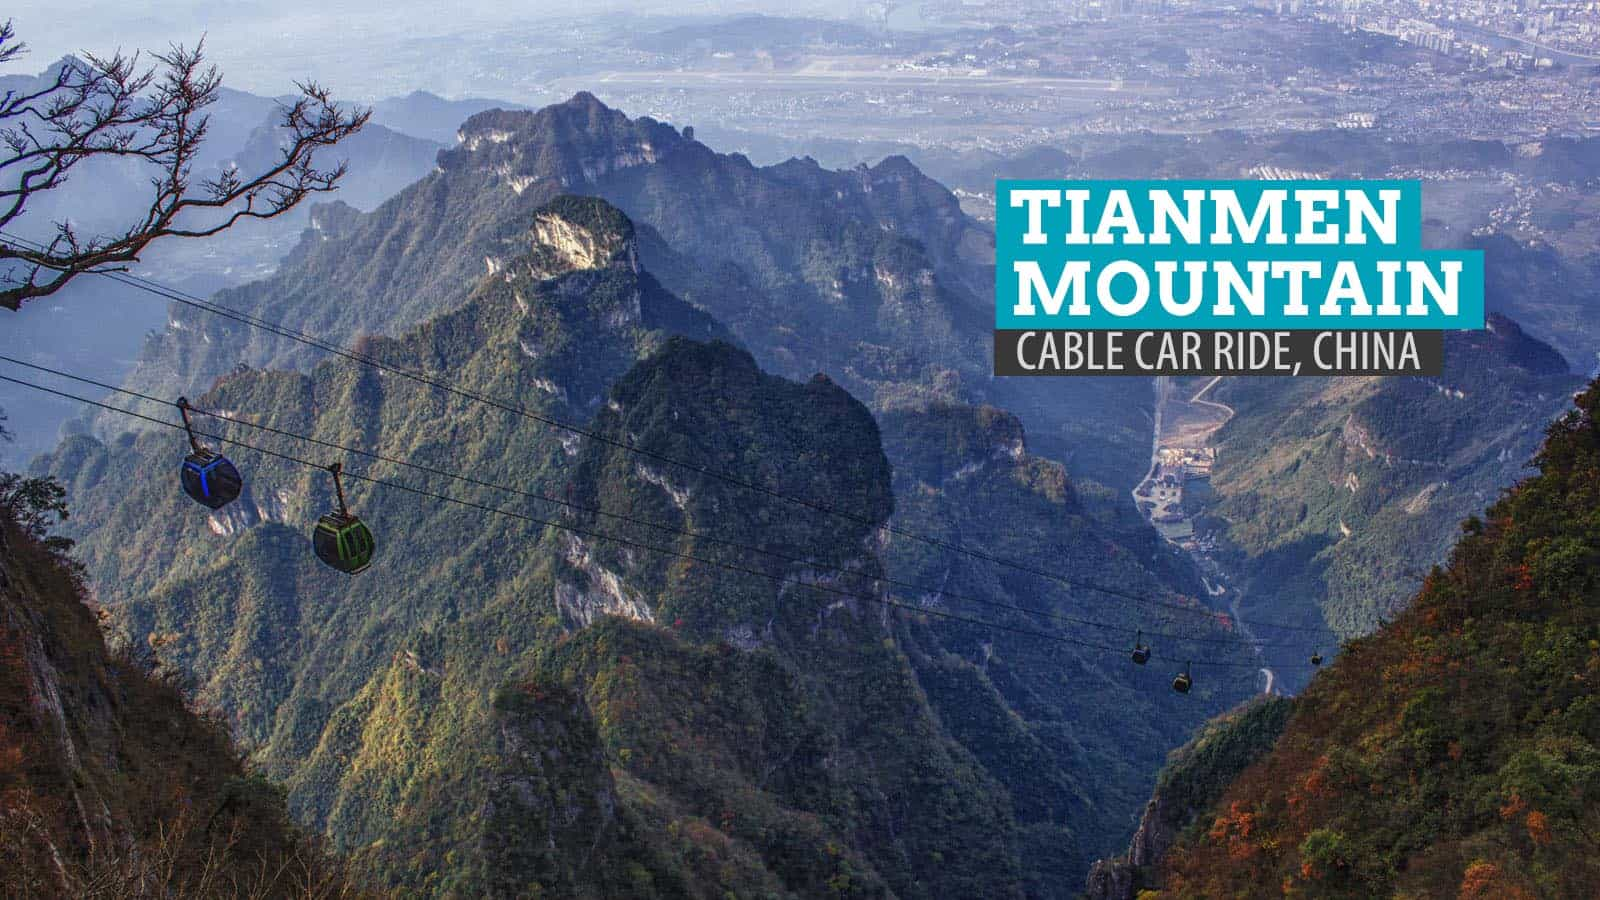 Tianmen Mountain Cable Car, China: The Most Scenic Ride of My Life